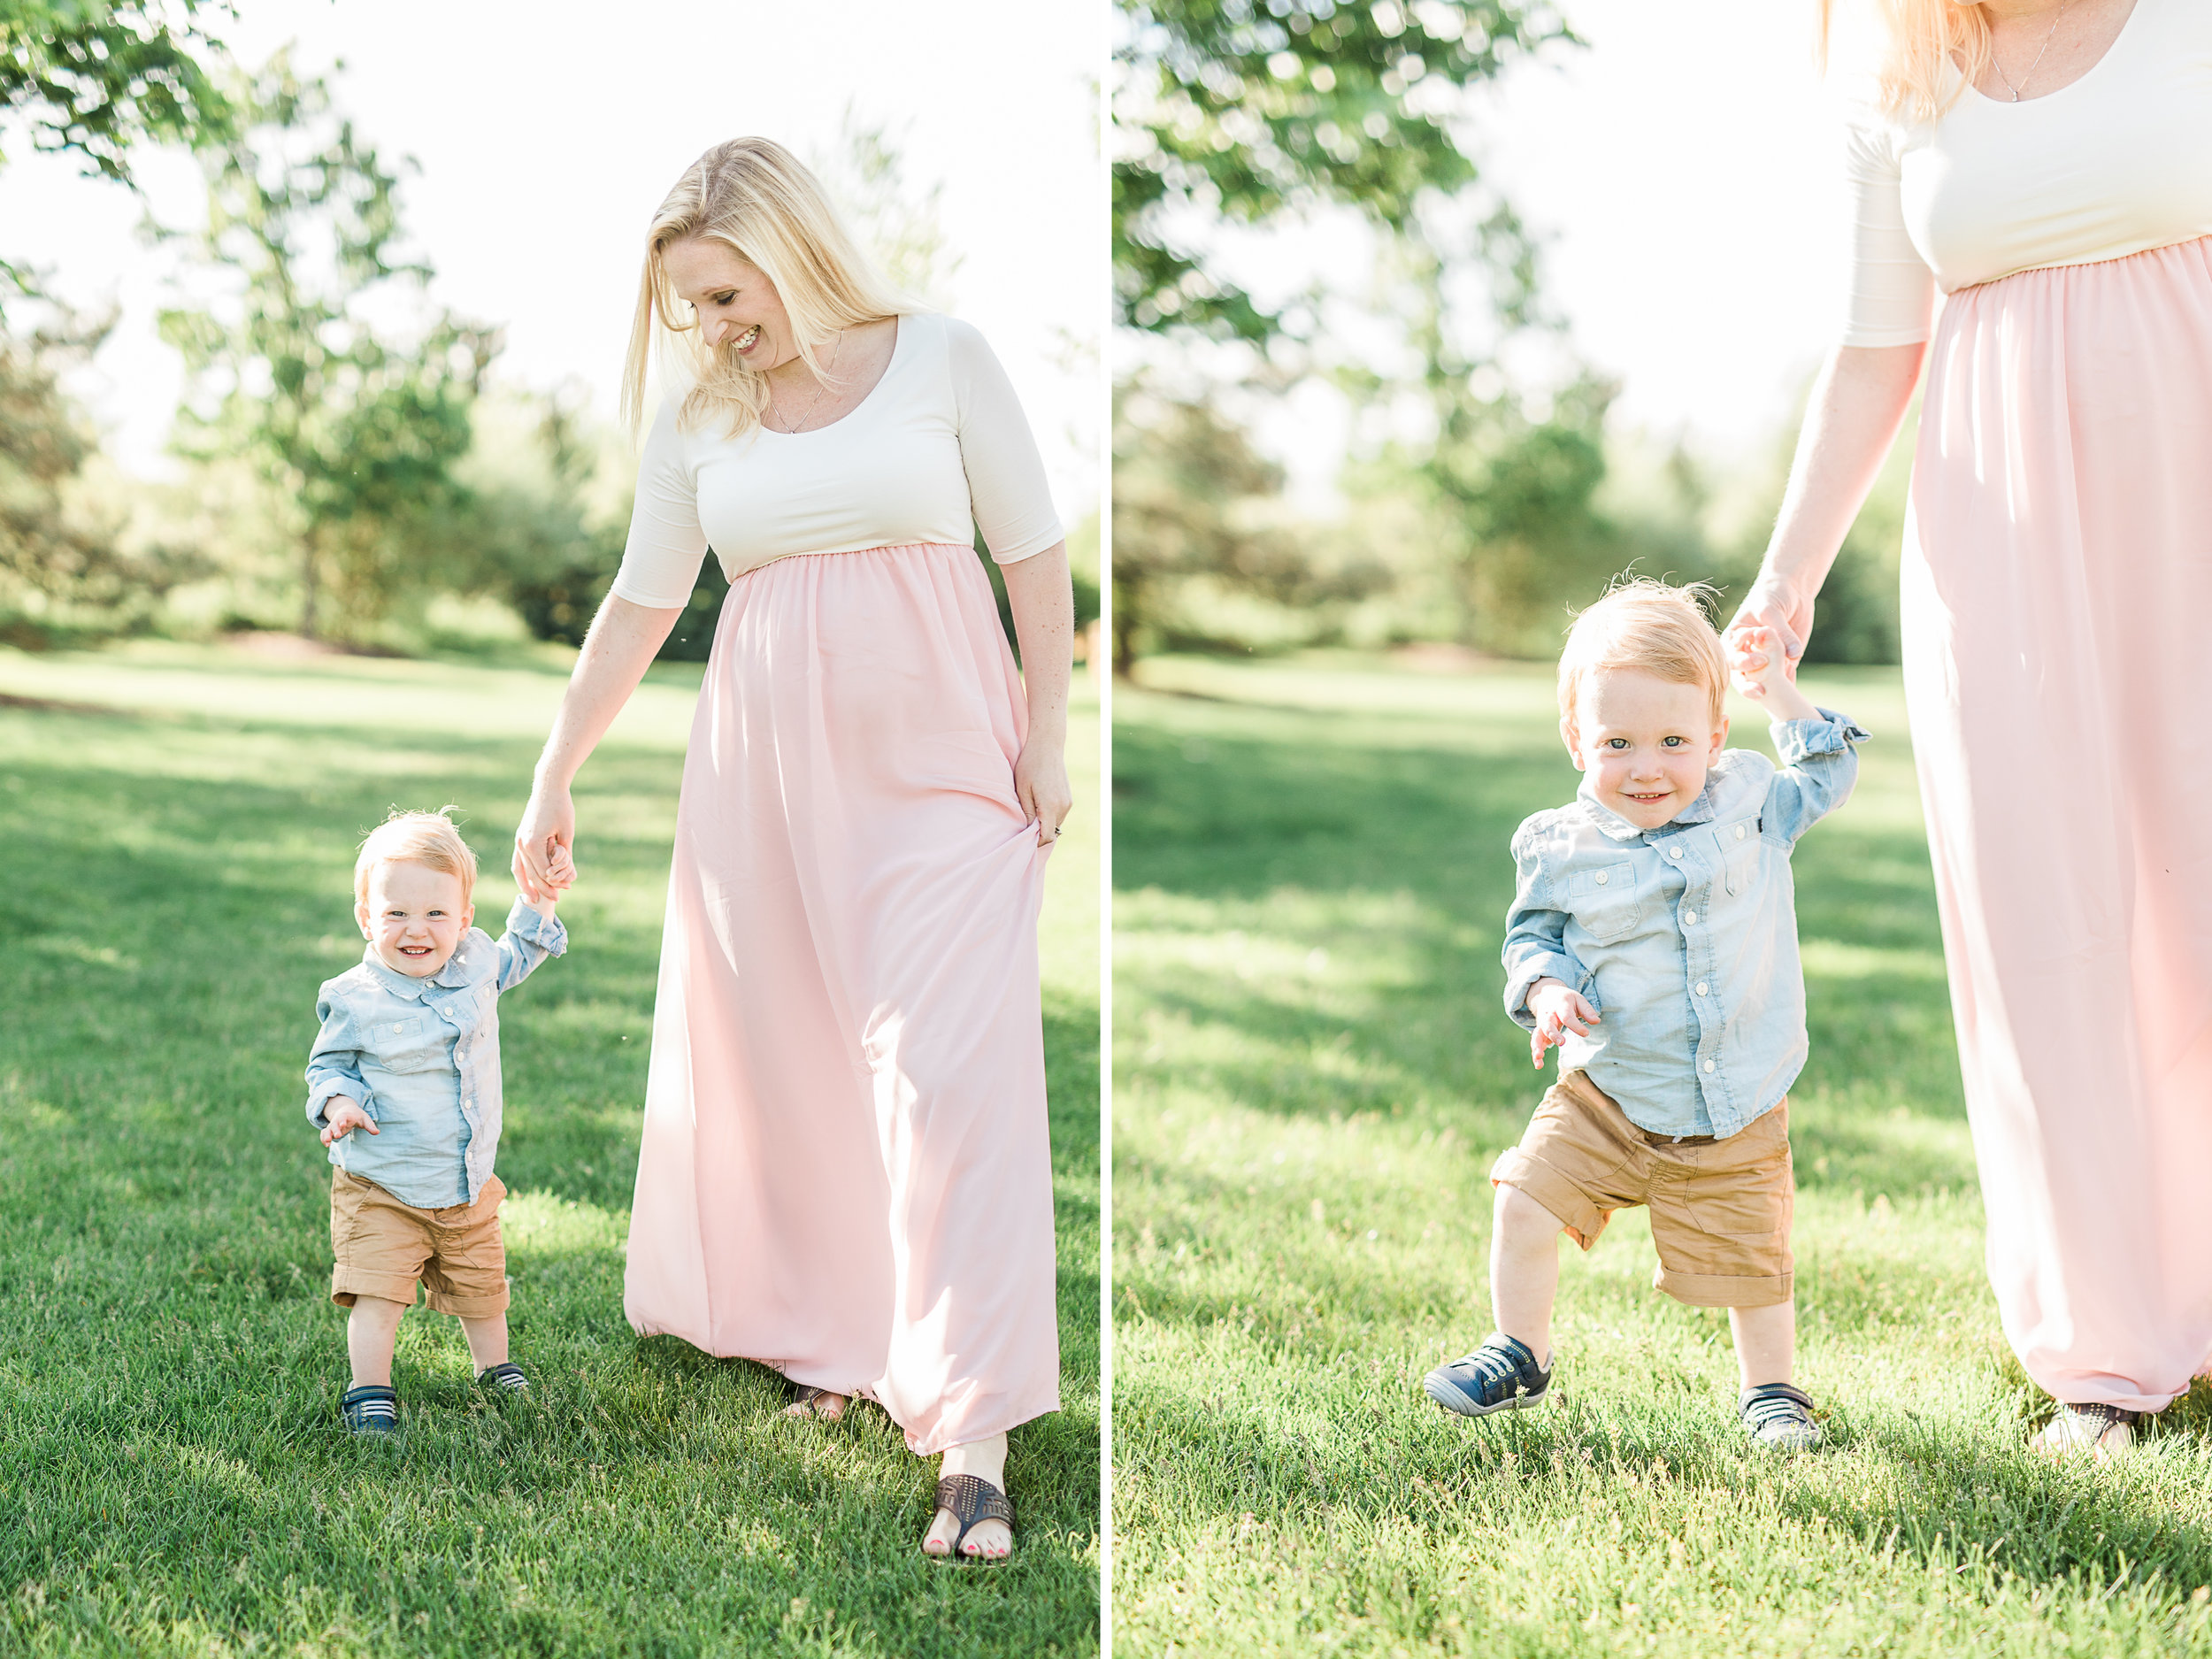 Mommy and Me | What to Wear | Light and Airy Wardrobe | Pregnant | Maternity | West Michigan Maternity Photographer